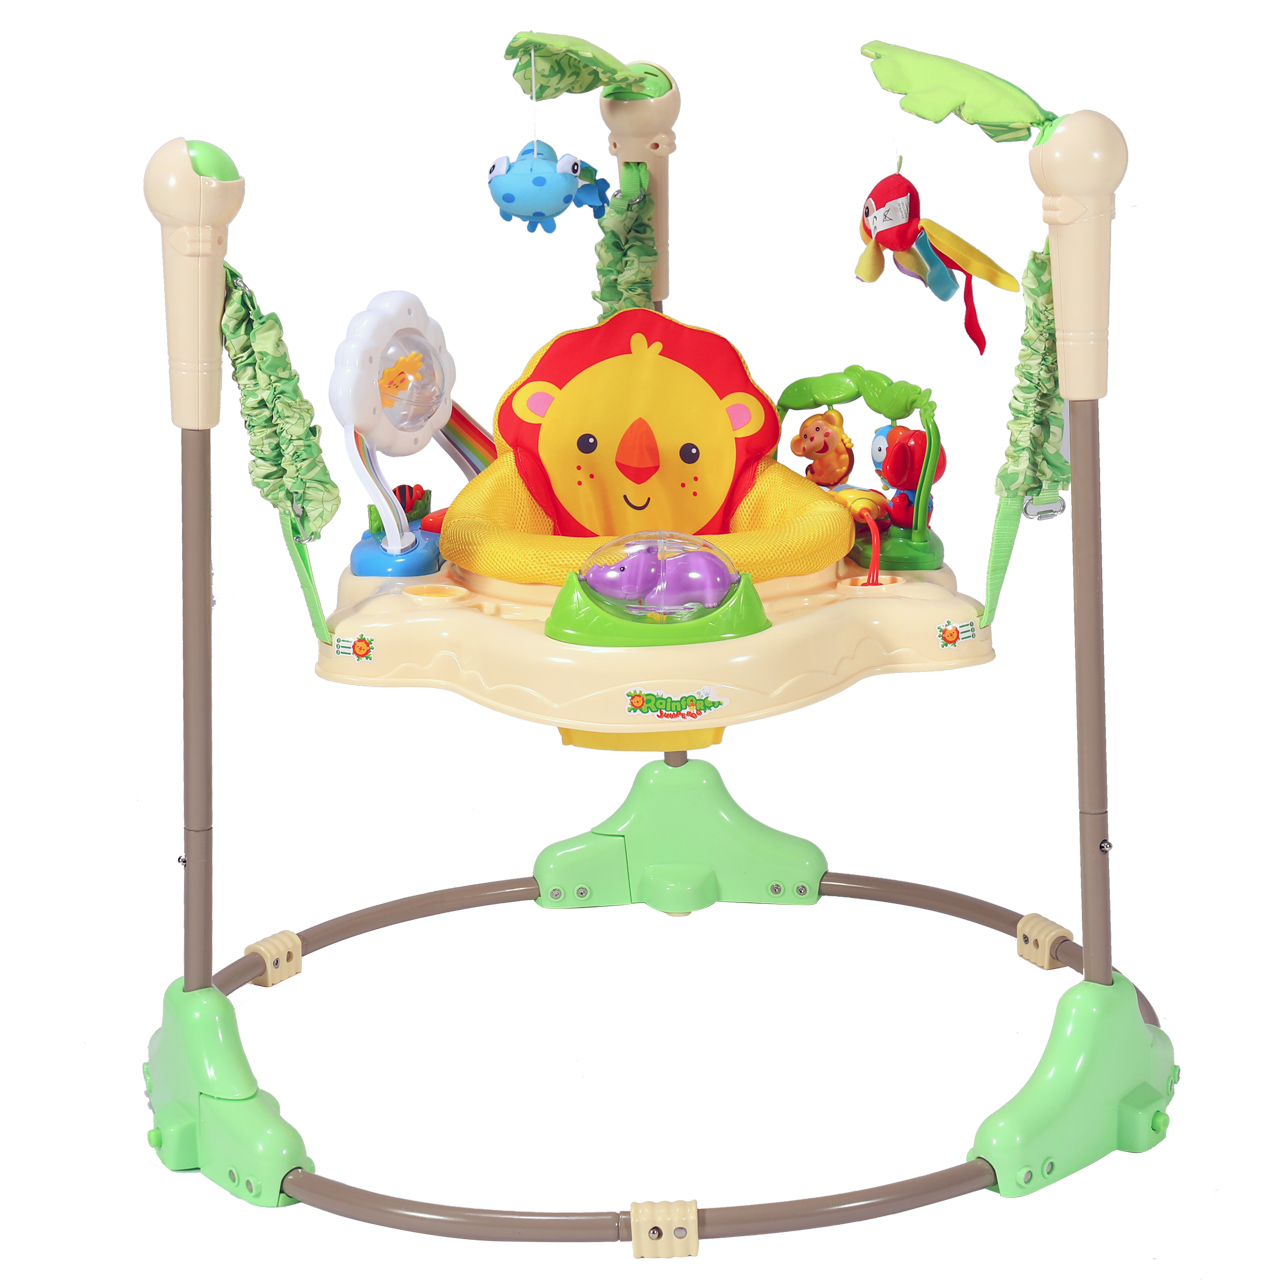 12 Month Olds Toys For Bouncing : Usd baby jumping chair bouncing